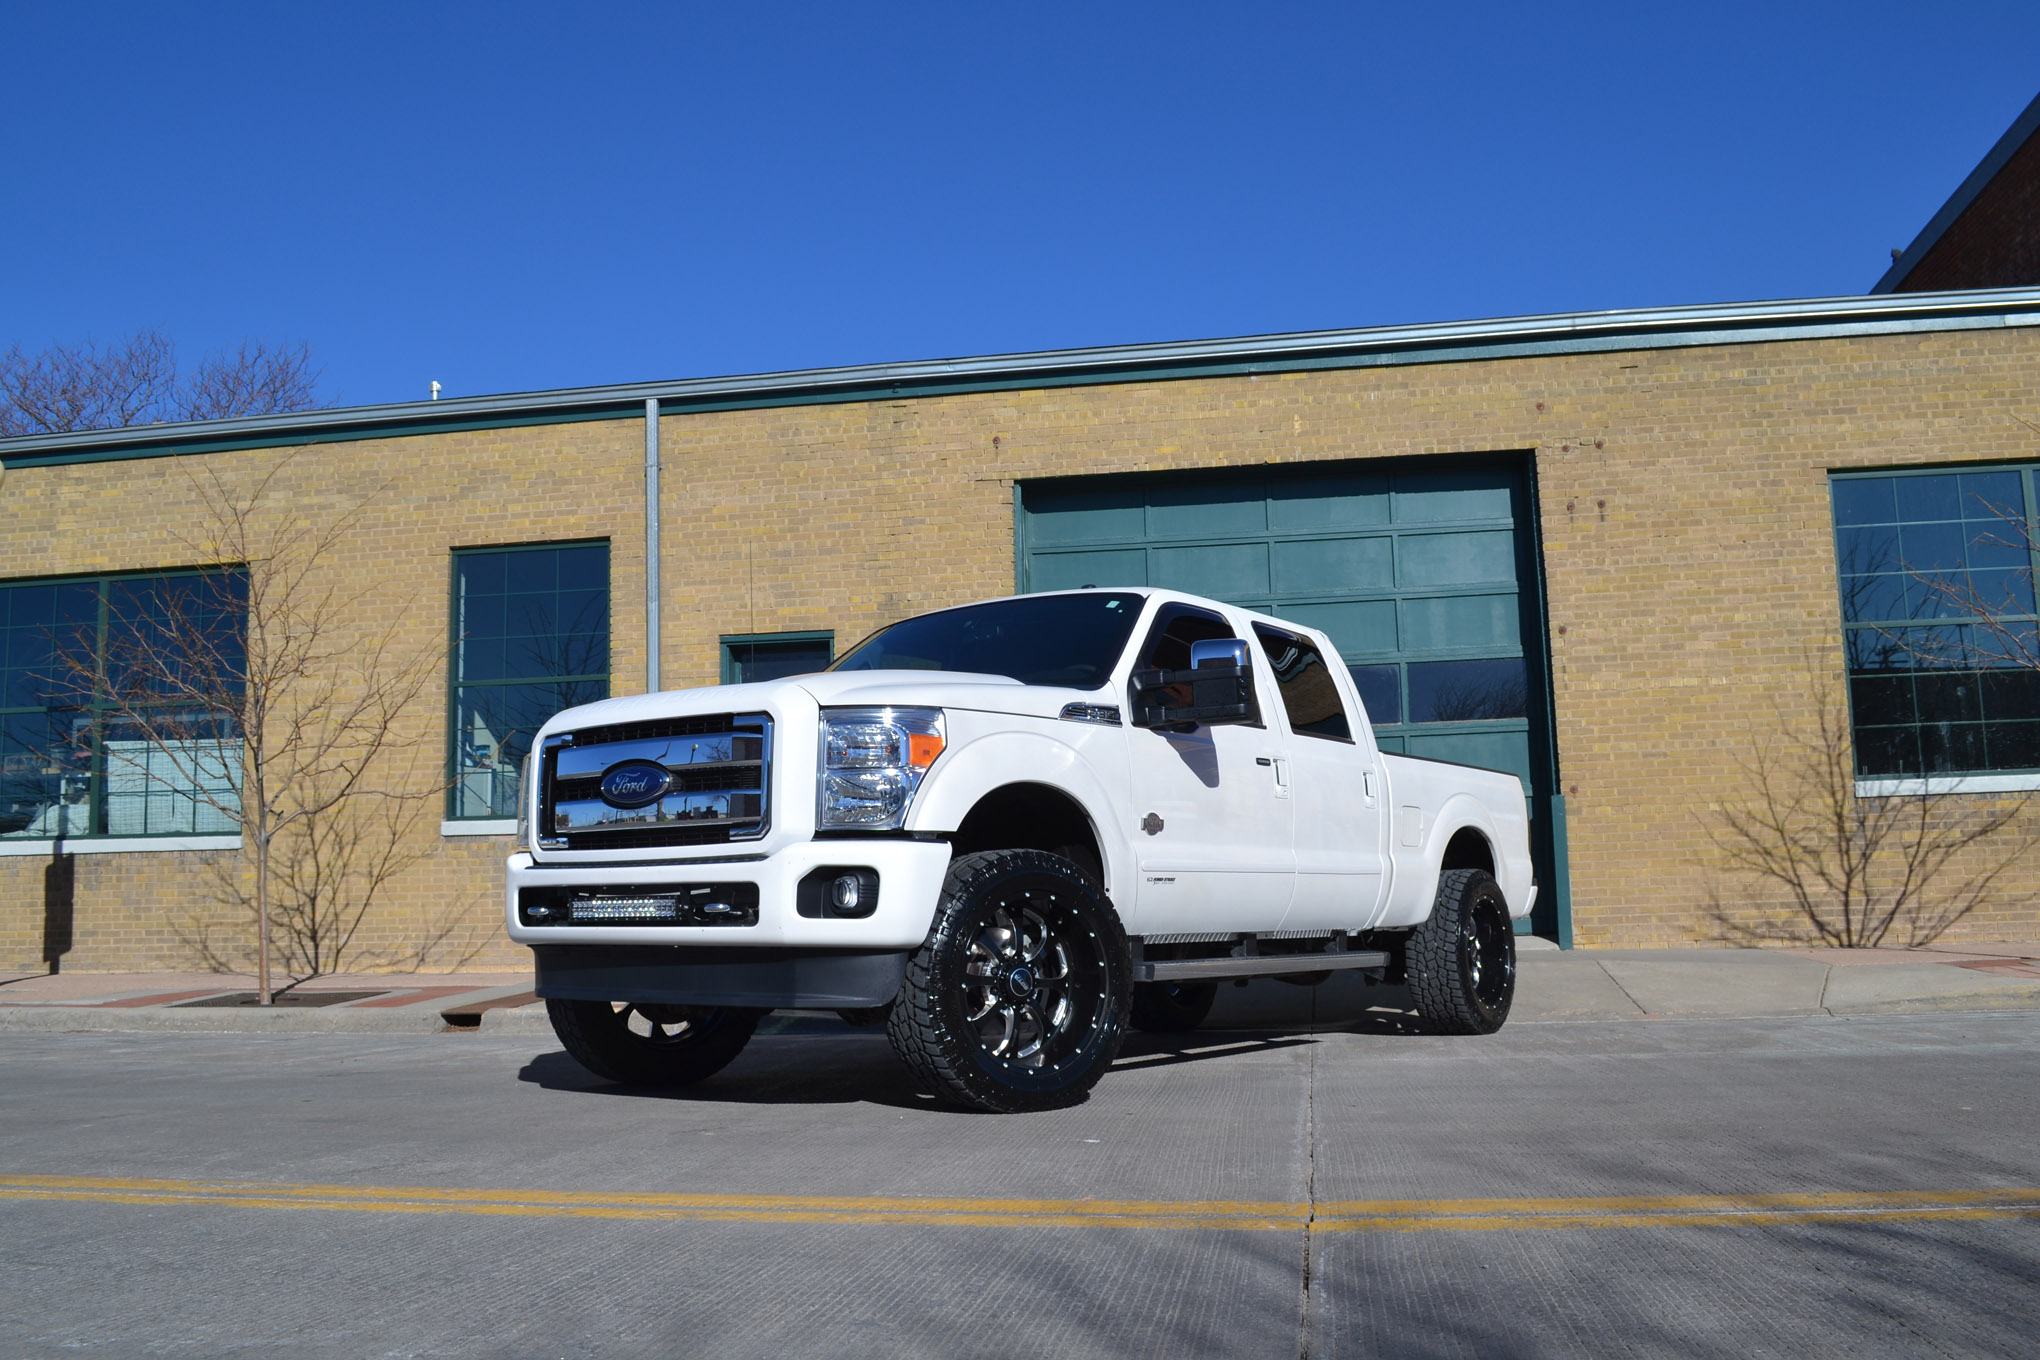 020 2016 Ford F350 King Ranch Front Low View Photo Gallery 20 Photos